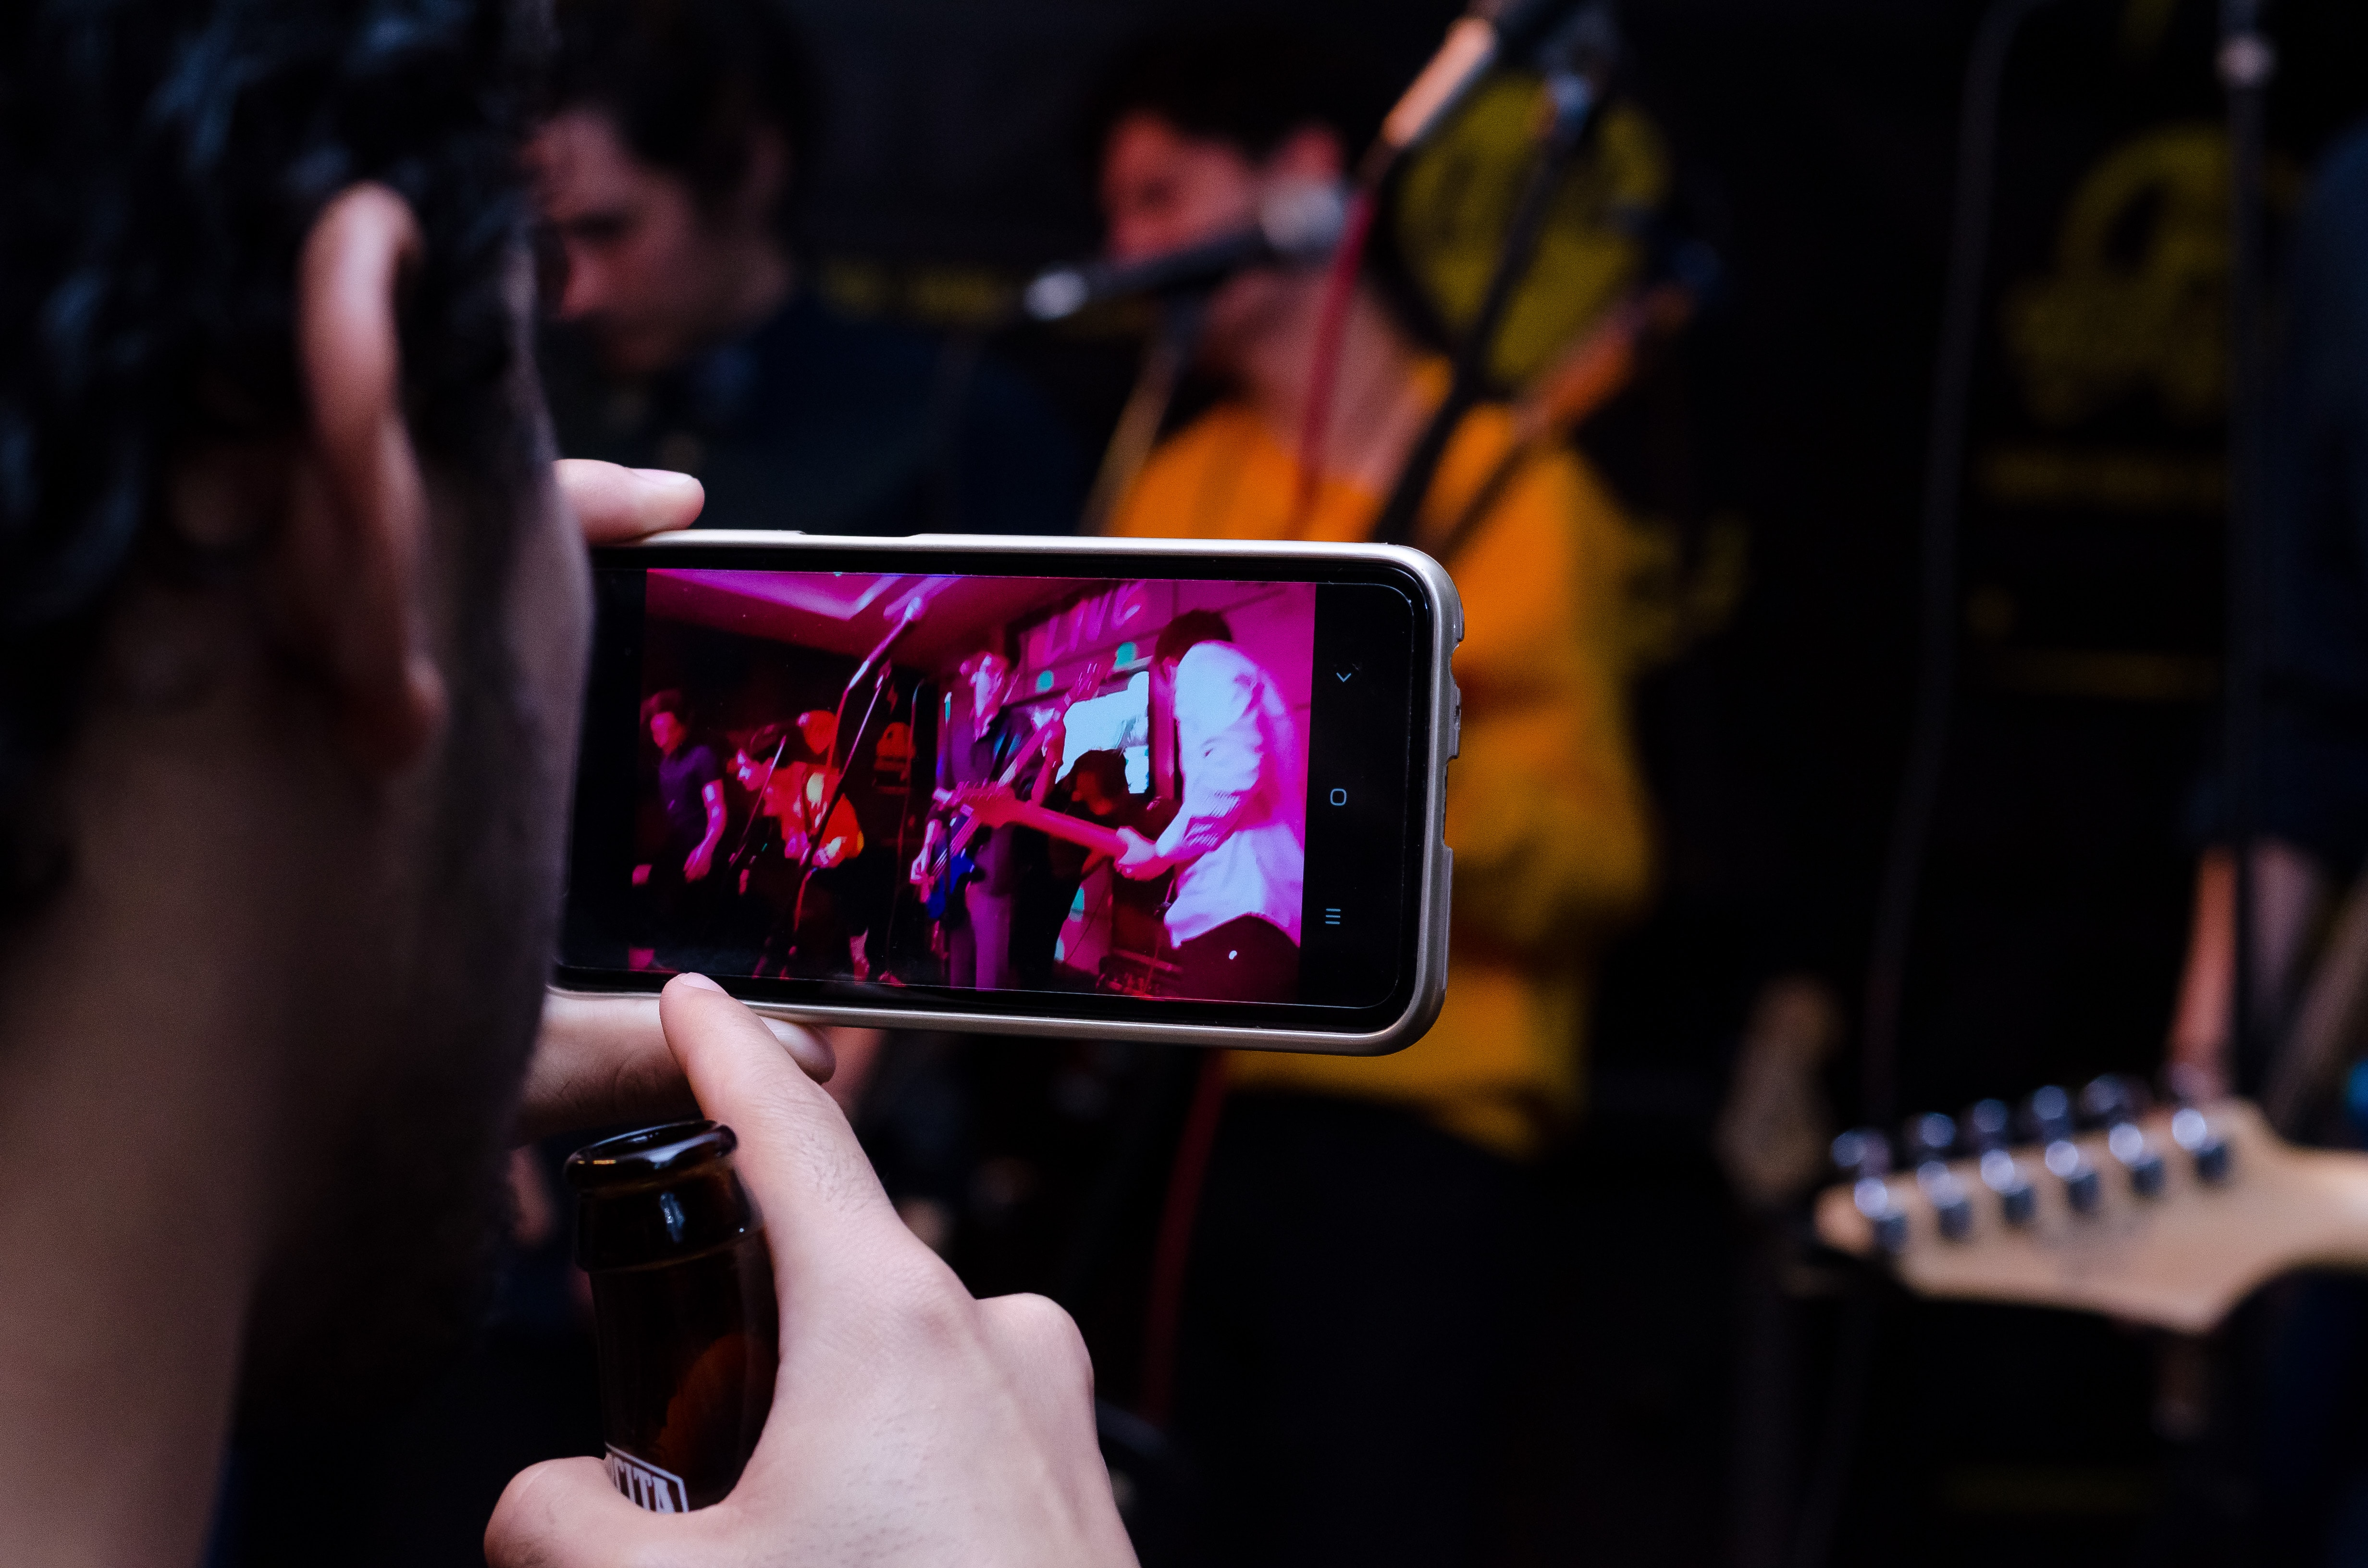 Mobile phone filming. Image by Frederick Medina